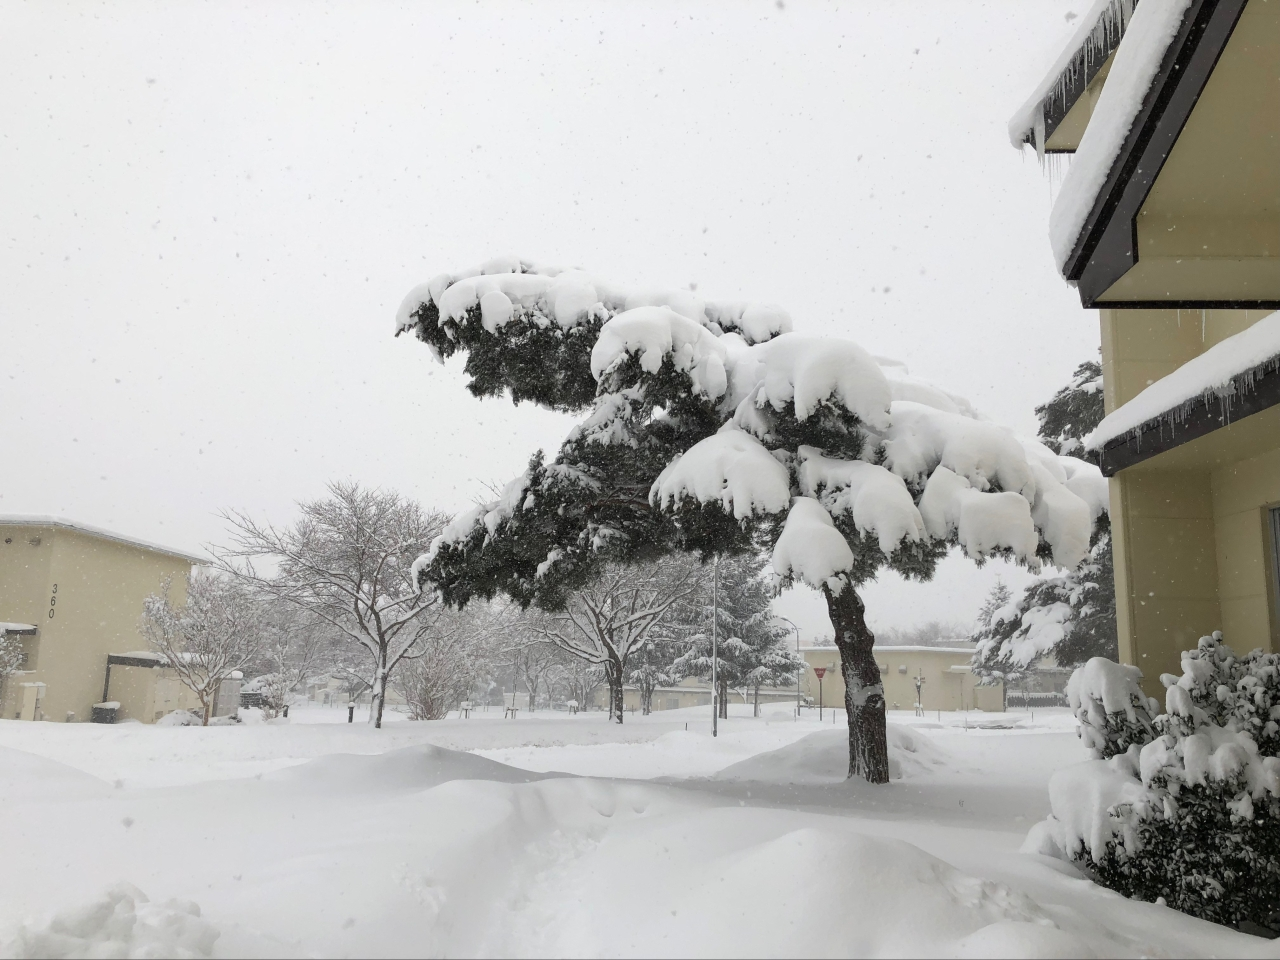 Heavy Snow in Tree